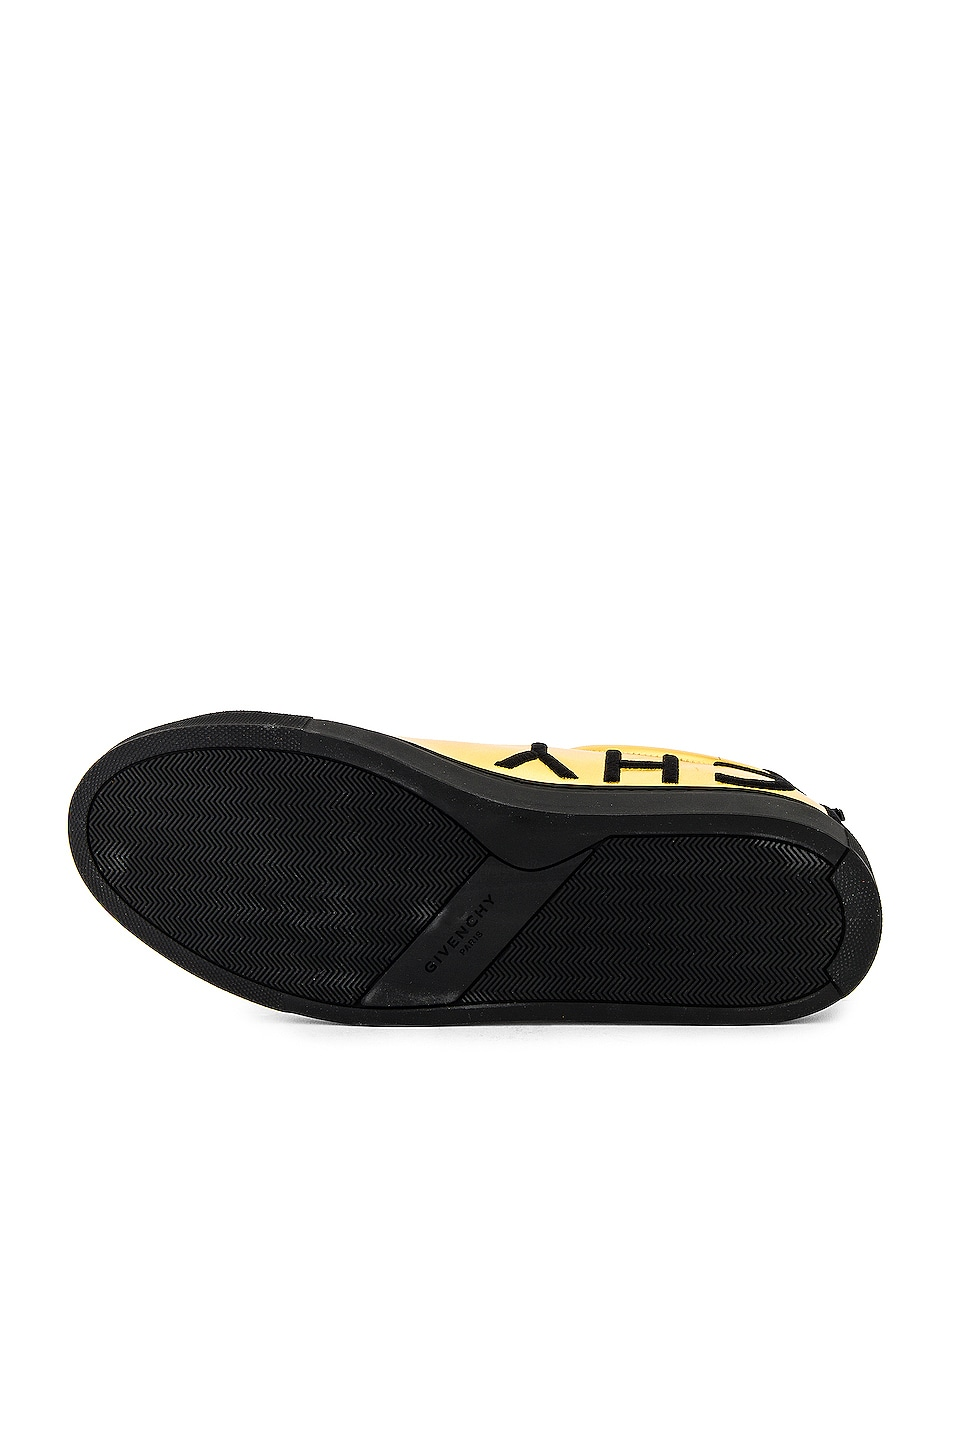 Image 6 of Givenchy Urban Street Low Sneakers in Gold